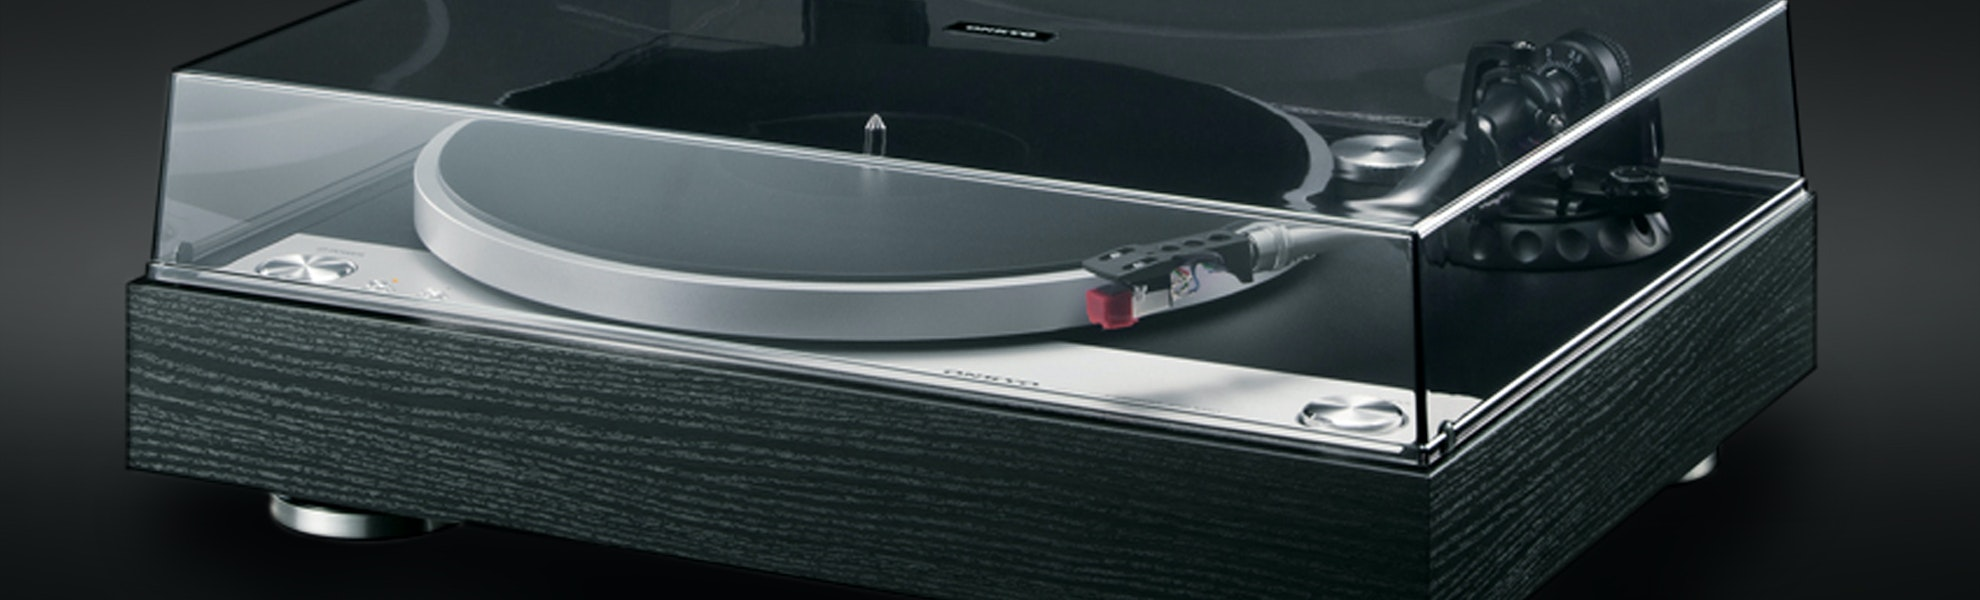 onkyo turntable. onkyo cp-1050 turntable